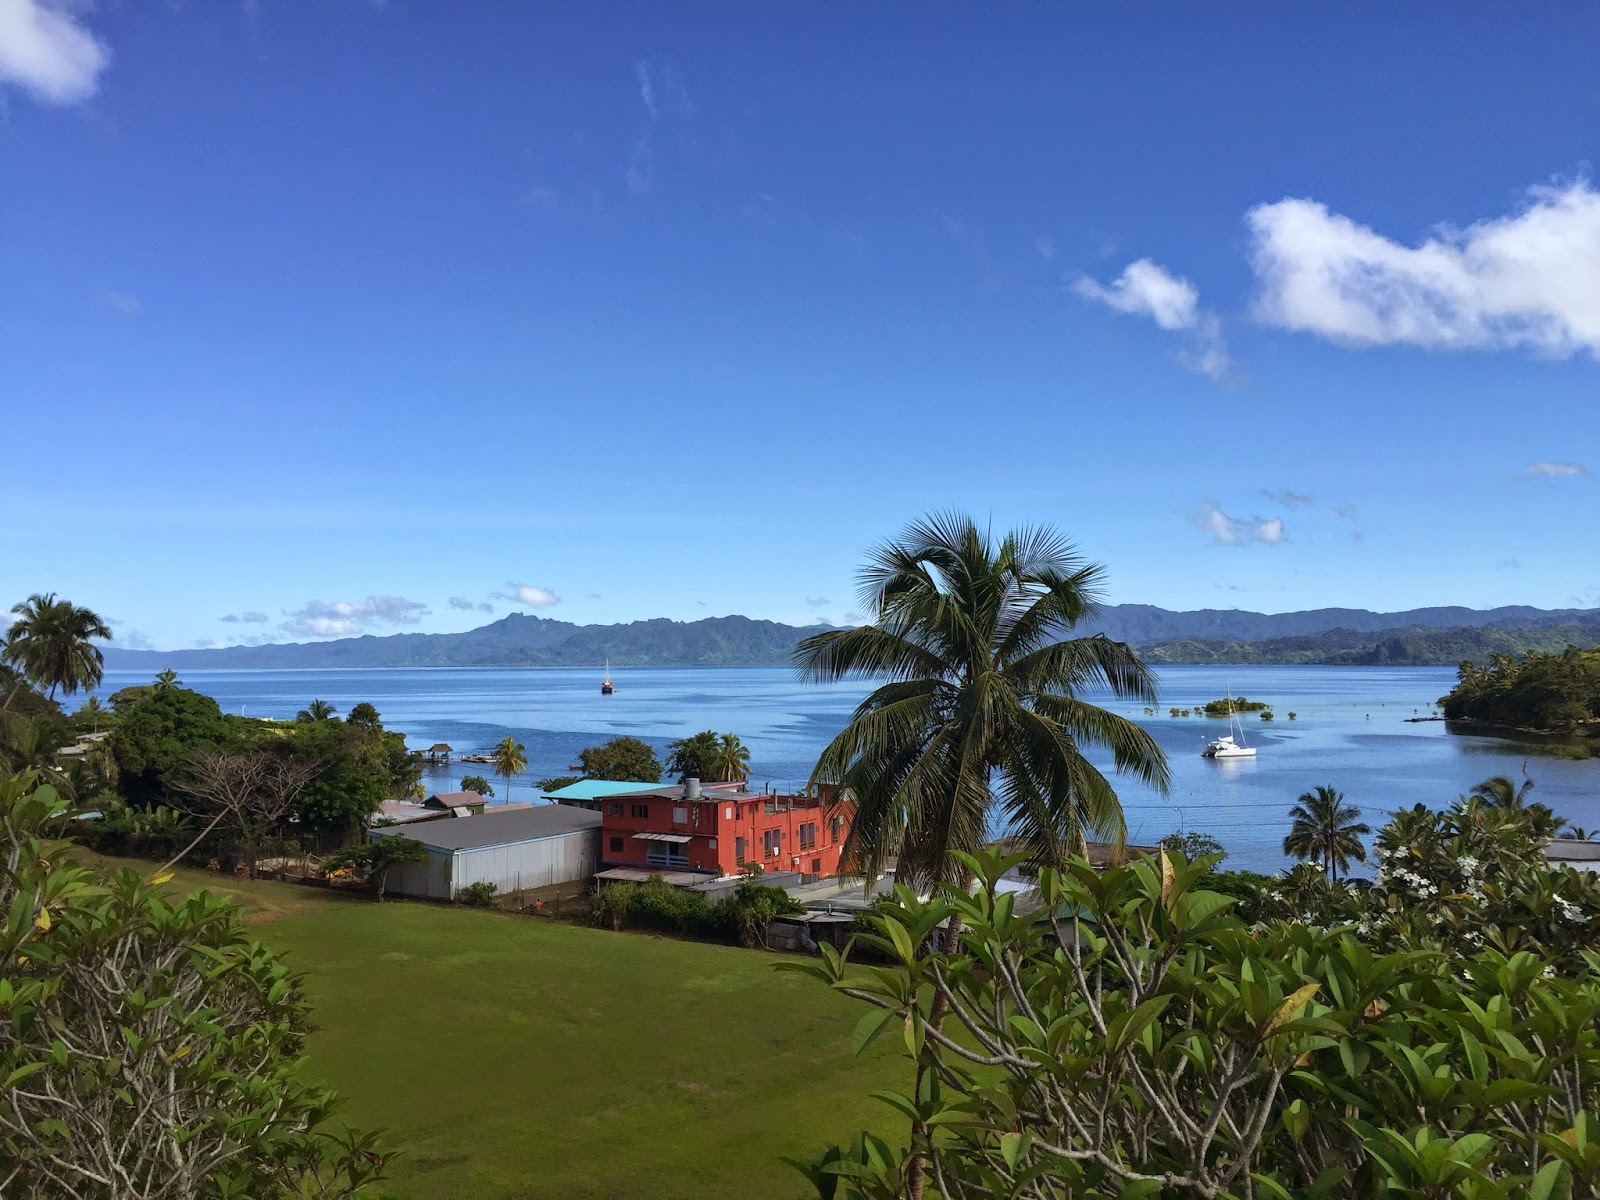 Looking out over the coast of Fiji